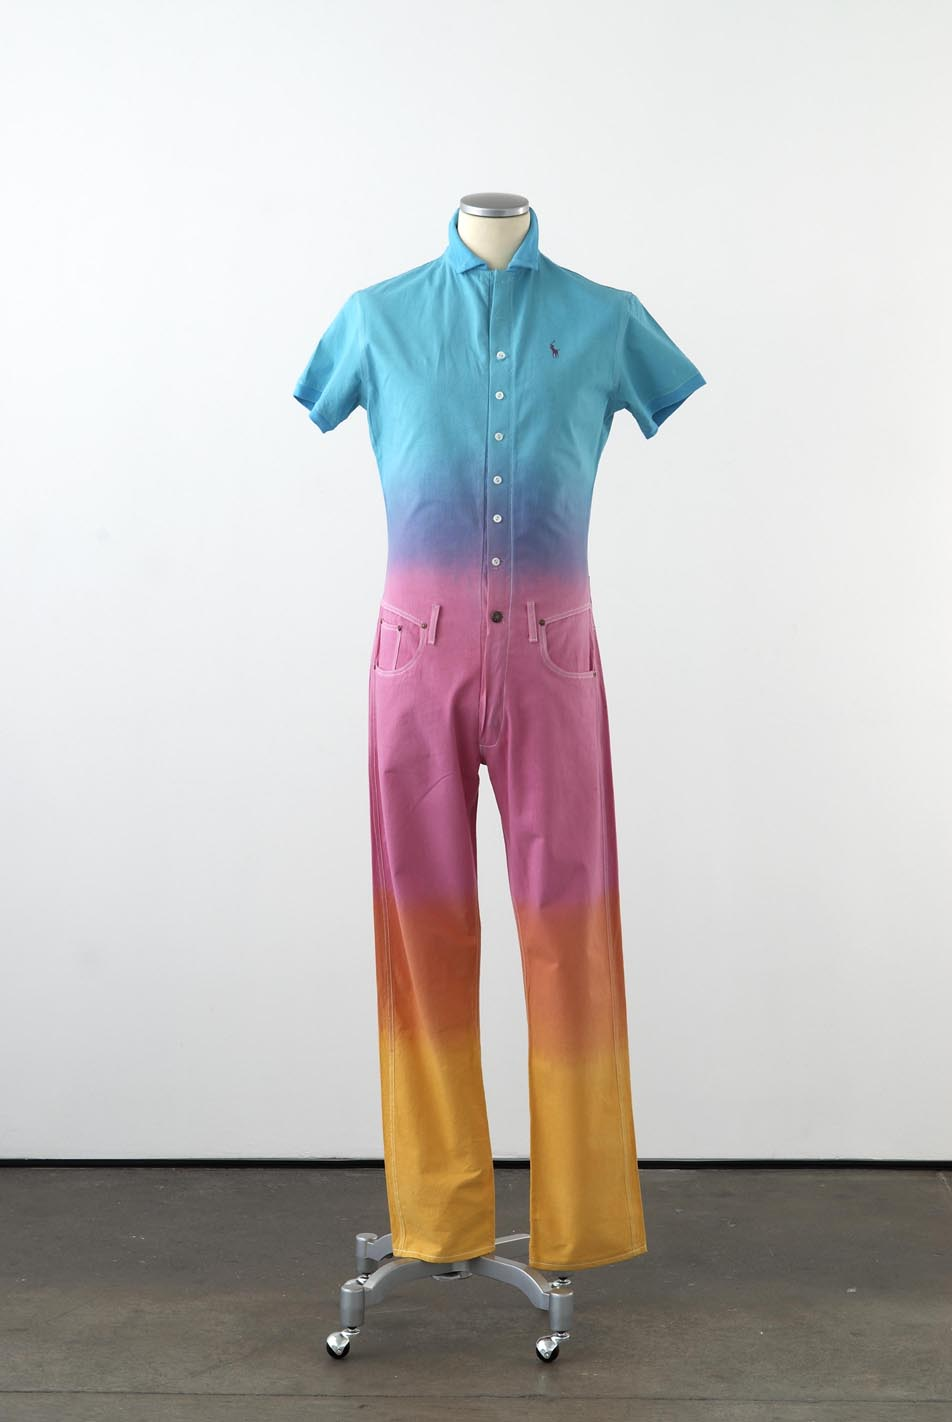 Matthew Darbyshire Standardised Production Clothing, Version 6 2009 Dip dyed calico, cotton jersey & fittings on mannequin 185 x 45 x 34 cm